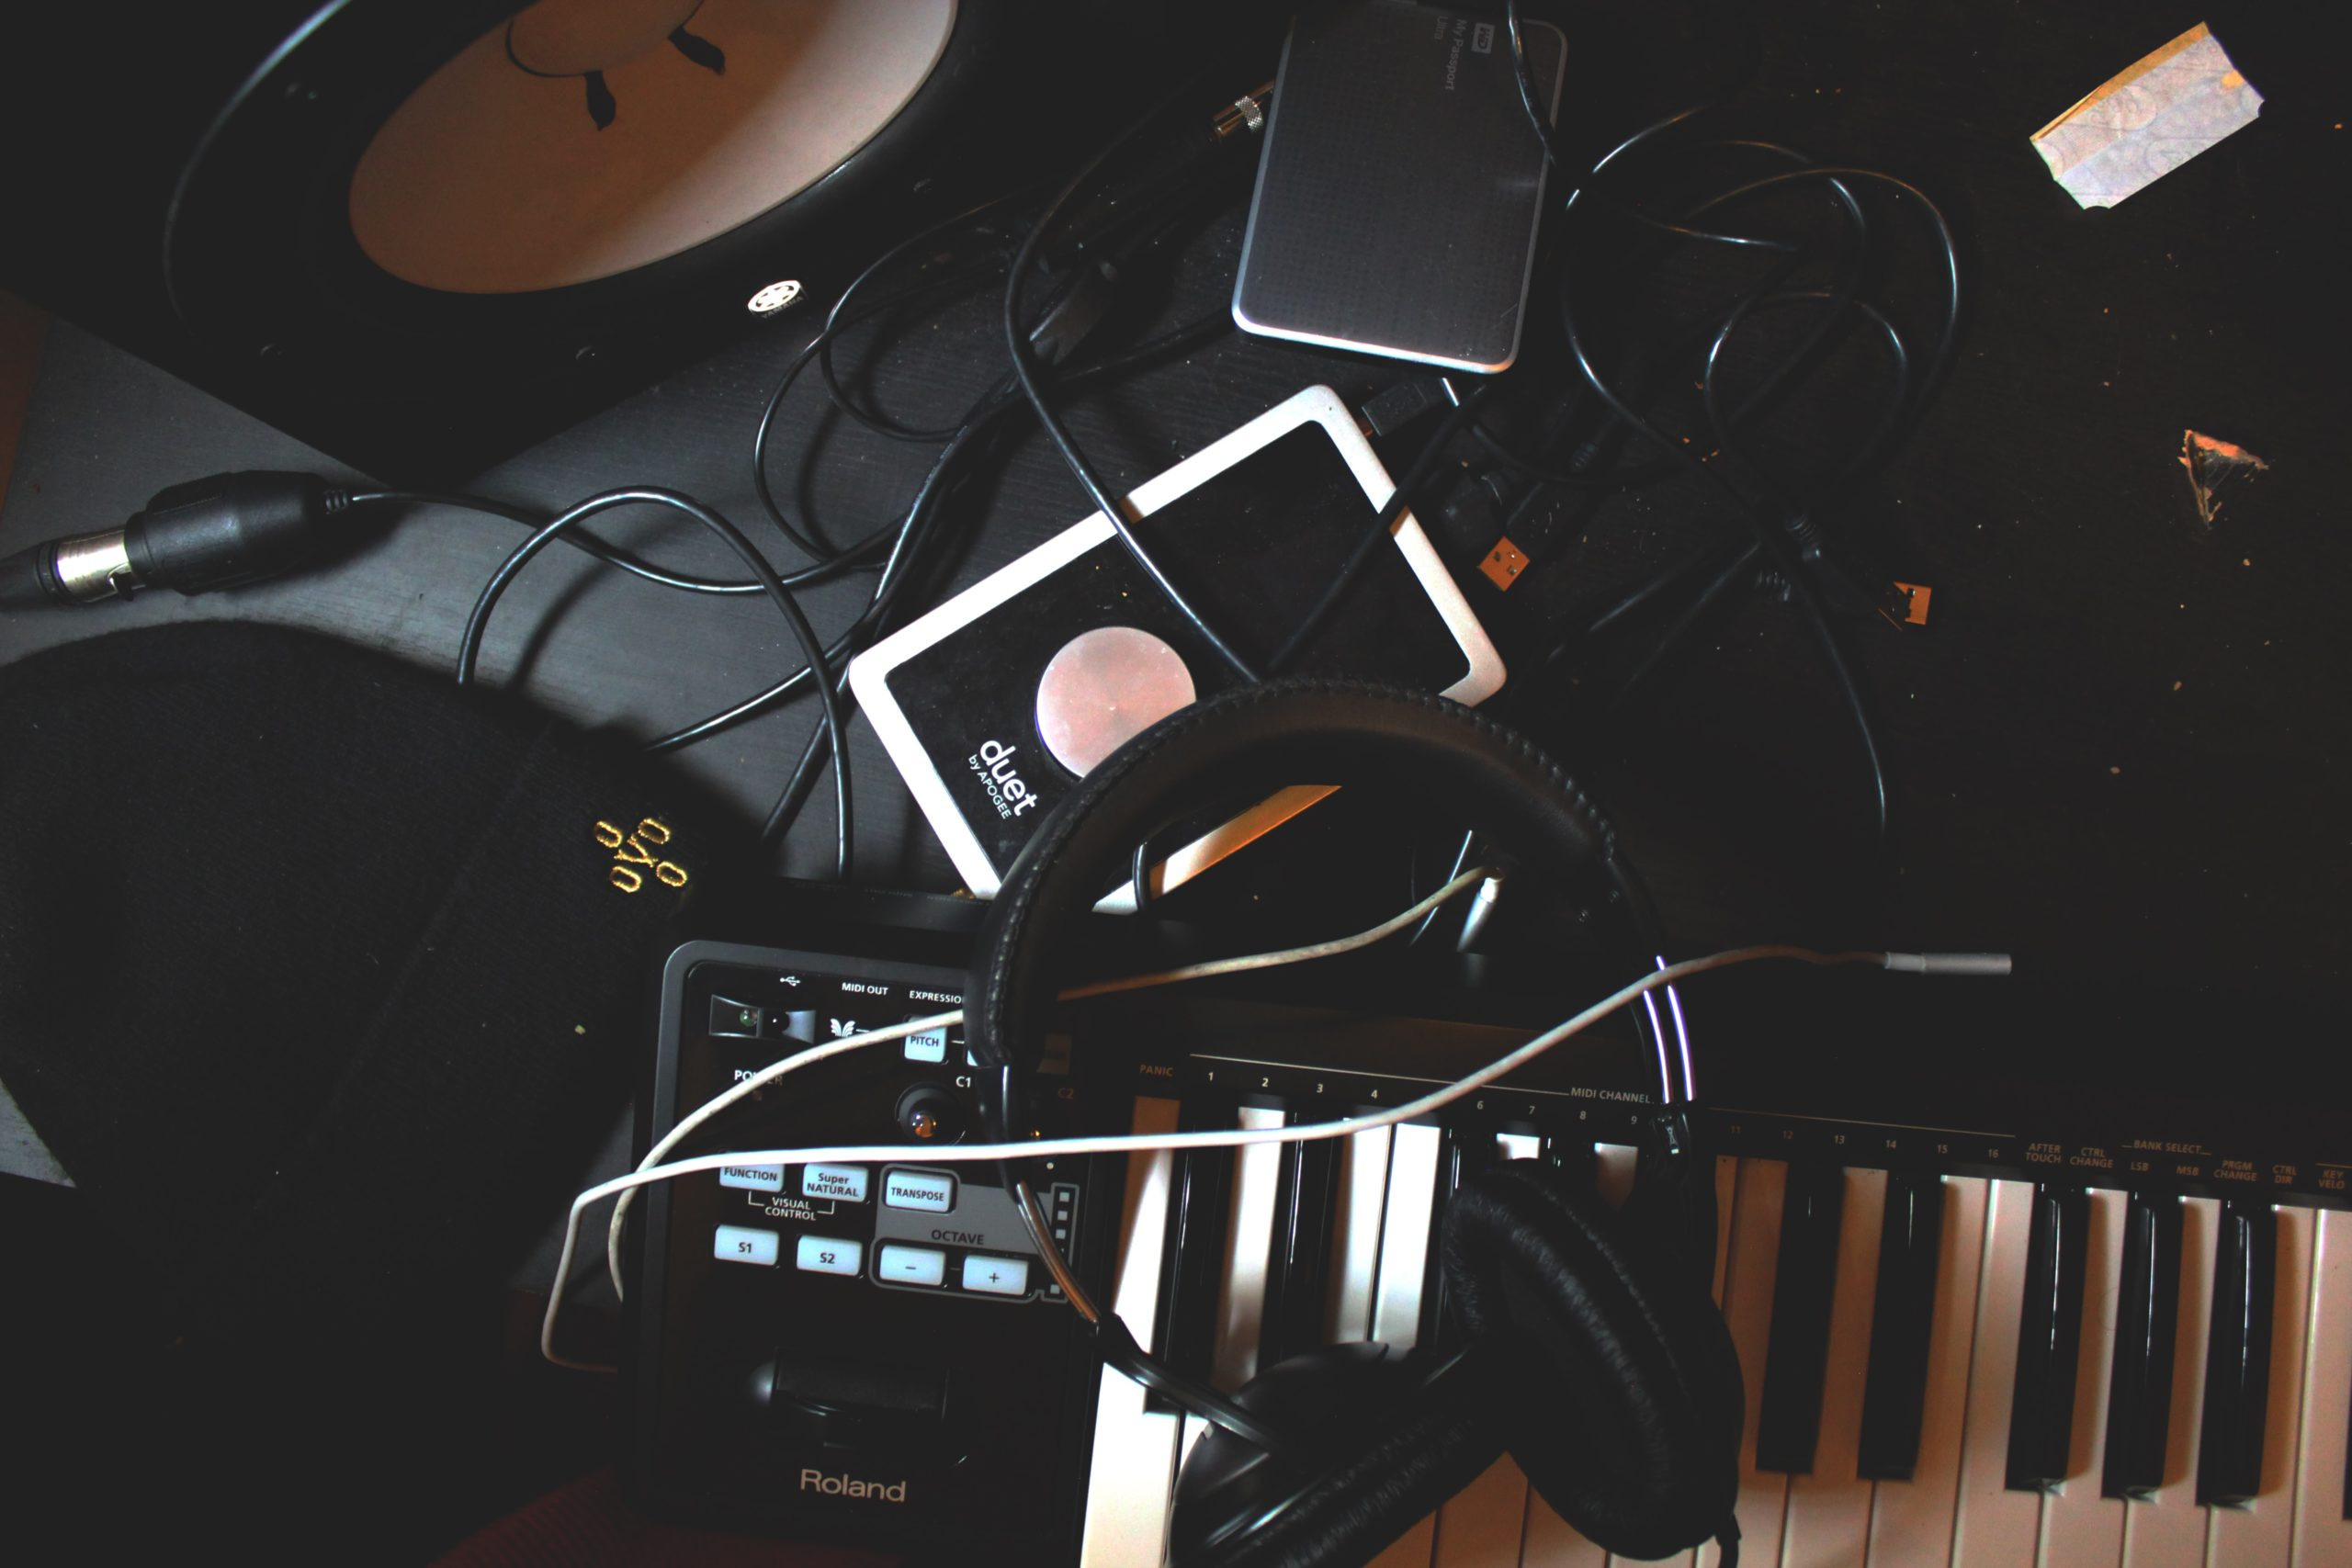 Image of music gear